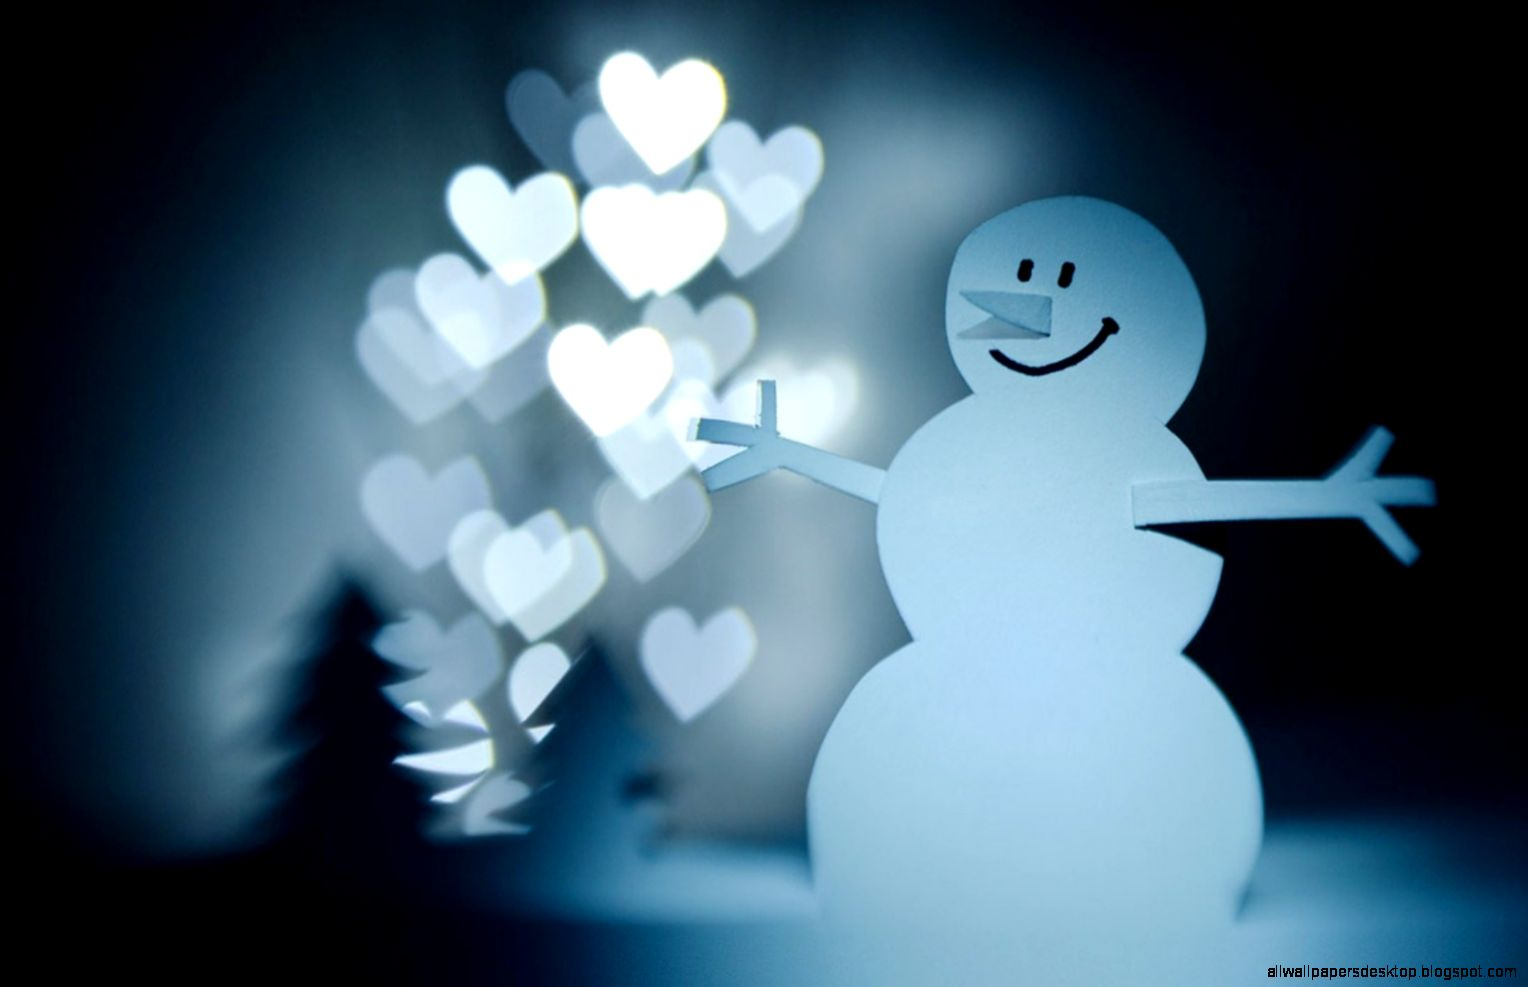 Paper Snowman Hearts Lights Christmas Trees Hd wallpaper by